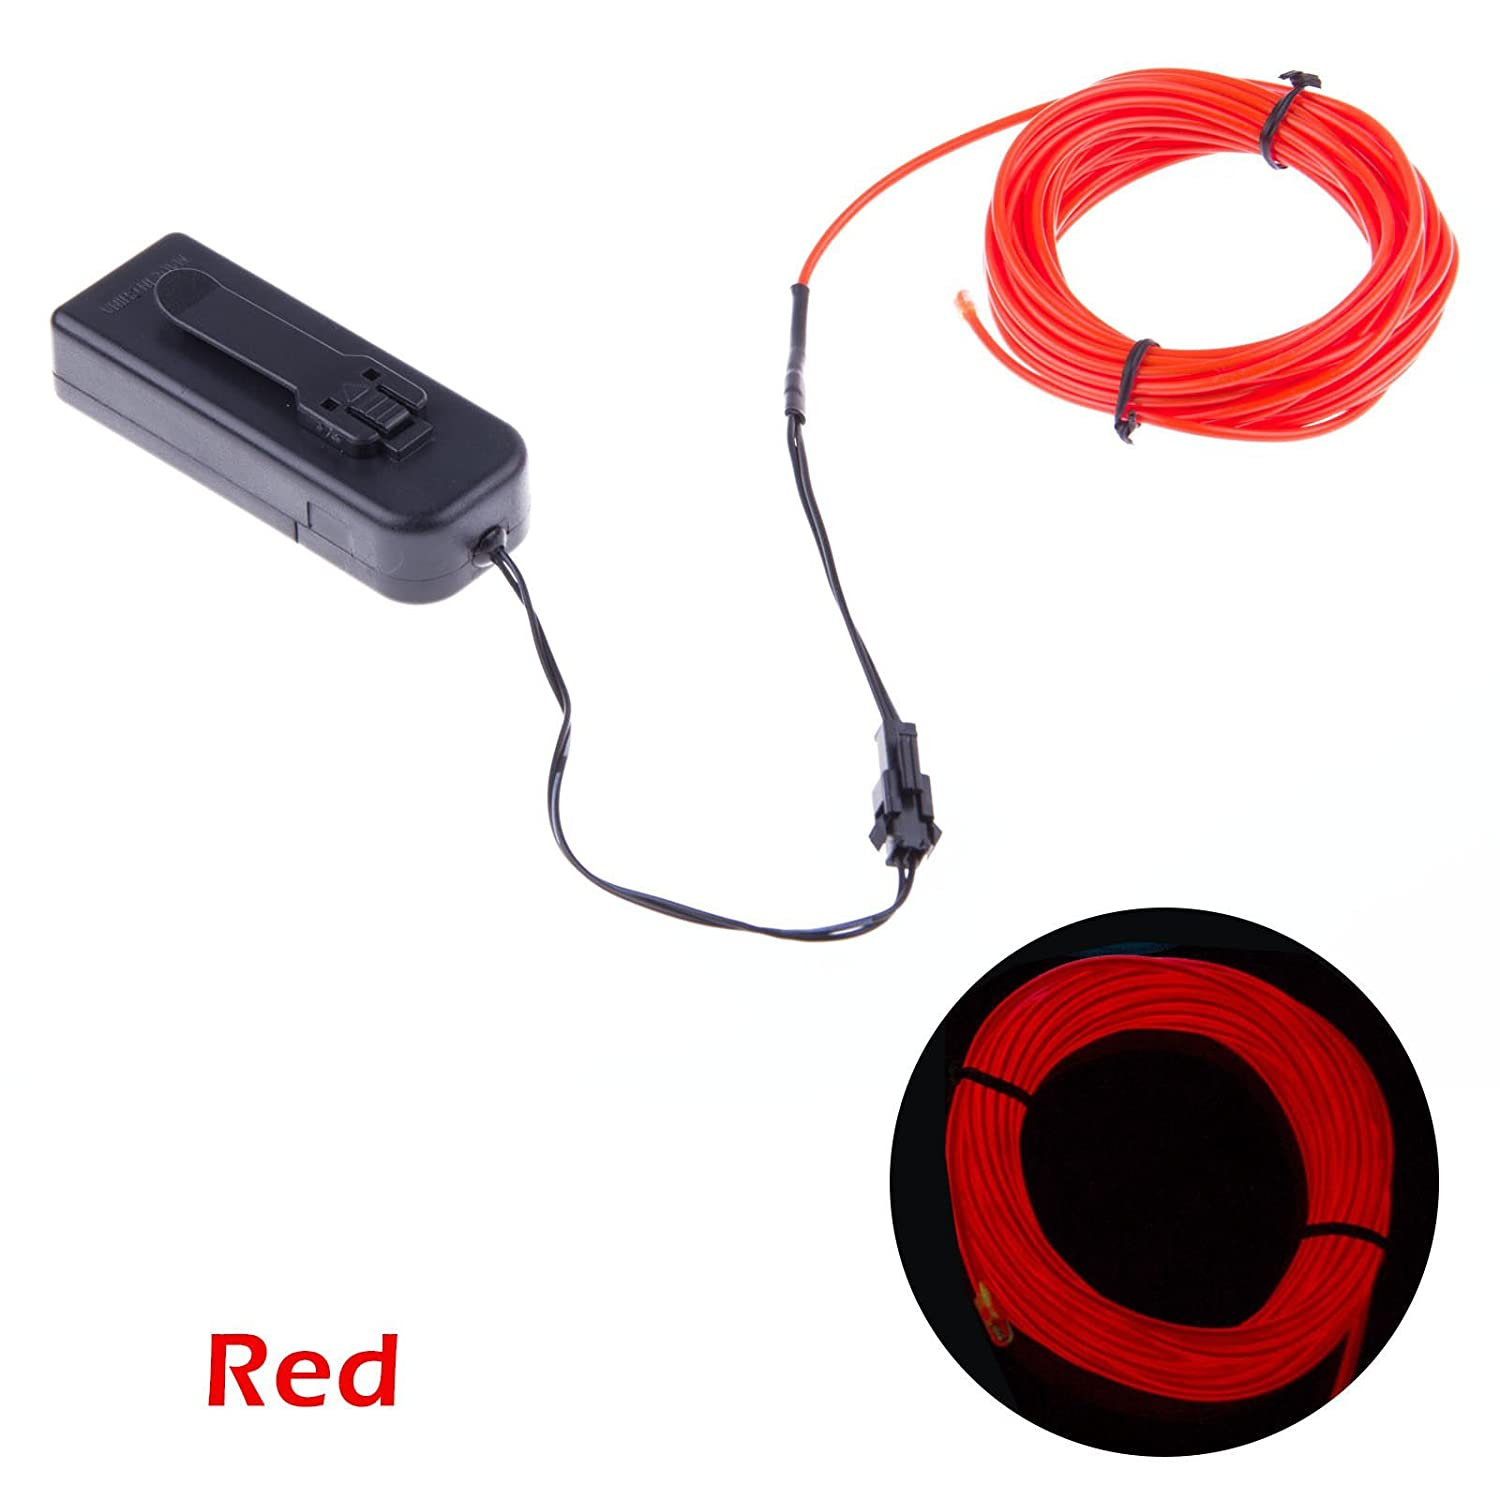 Amazon.com : TopYart Neon LED Light Glow EL Wire Battery Pack String ...